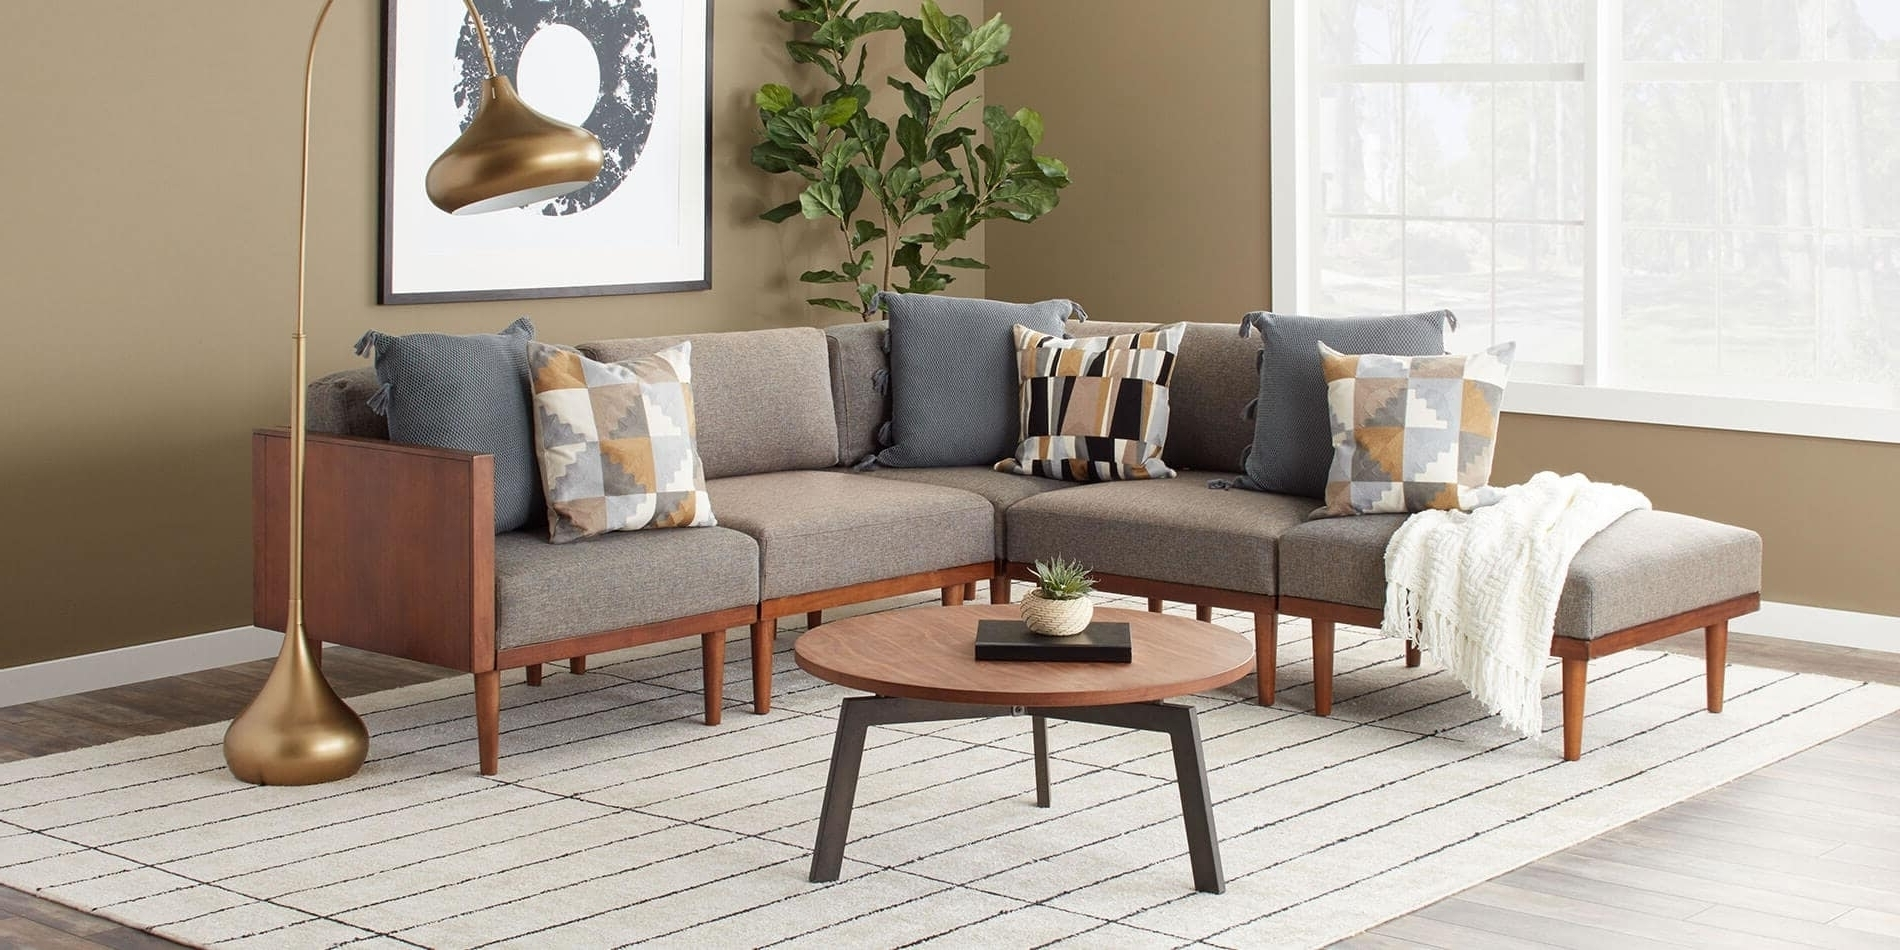 20 Collection Of Nh Sectional Sofas Pertaining To Nh Sectional Sofas (Photo 6 of 10)